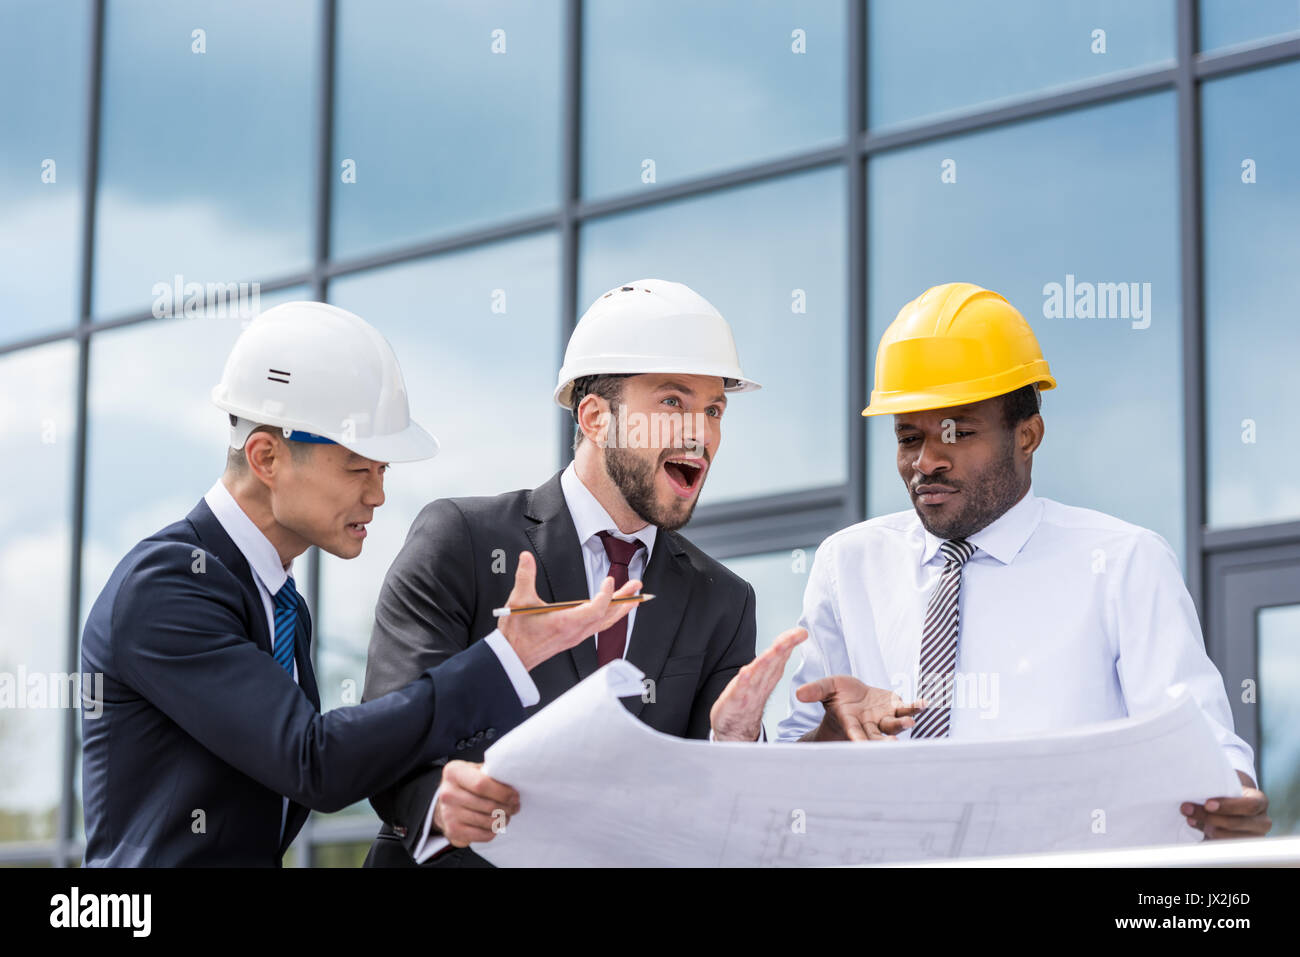 Group of professional architects in hardhats discussing blueprint outside modern building - Stock Image